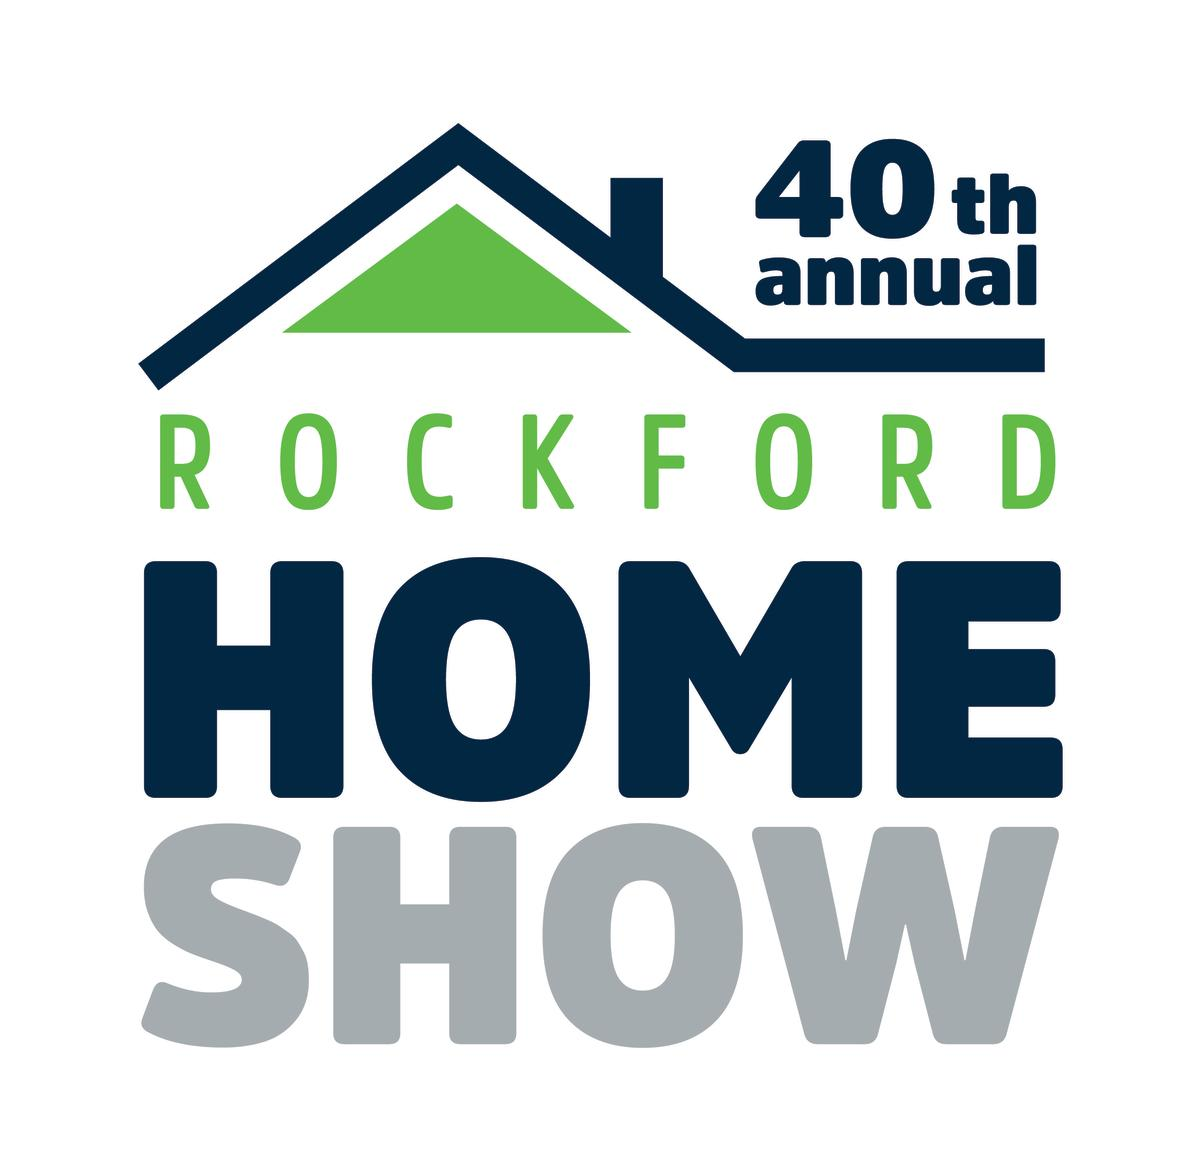 The Home Show 2020.Rockford Home Show 2020 Show 2020 Vacatureinzuidholland